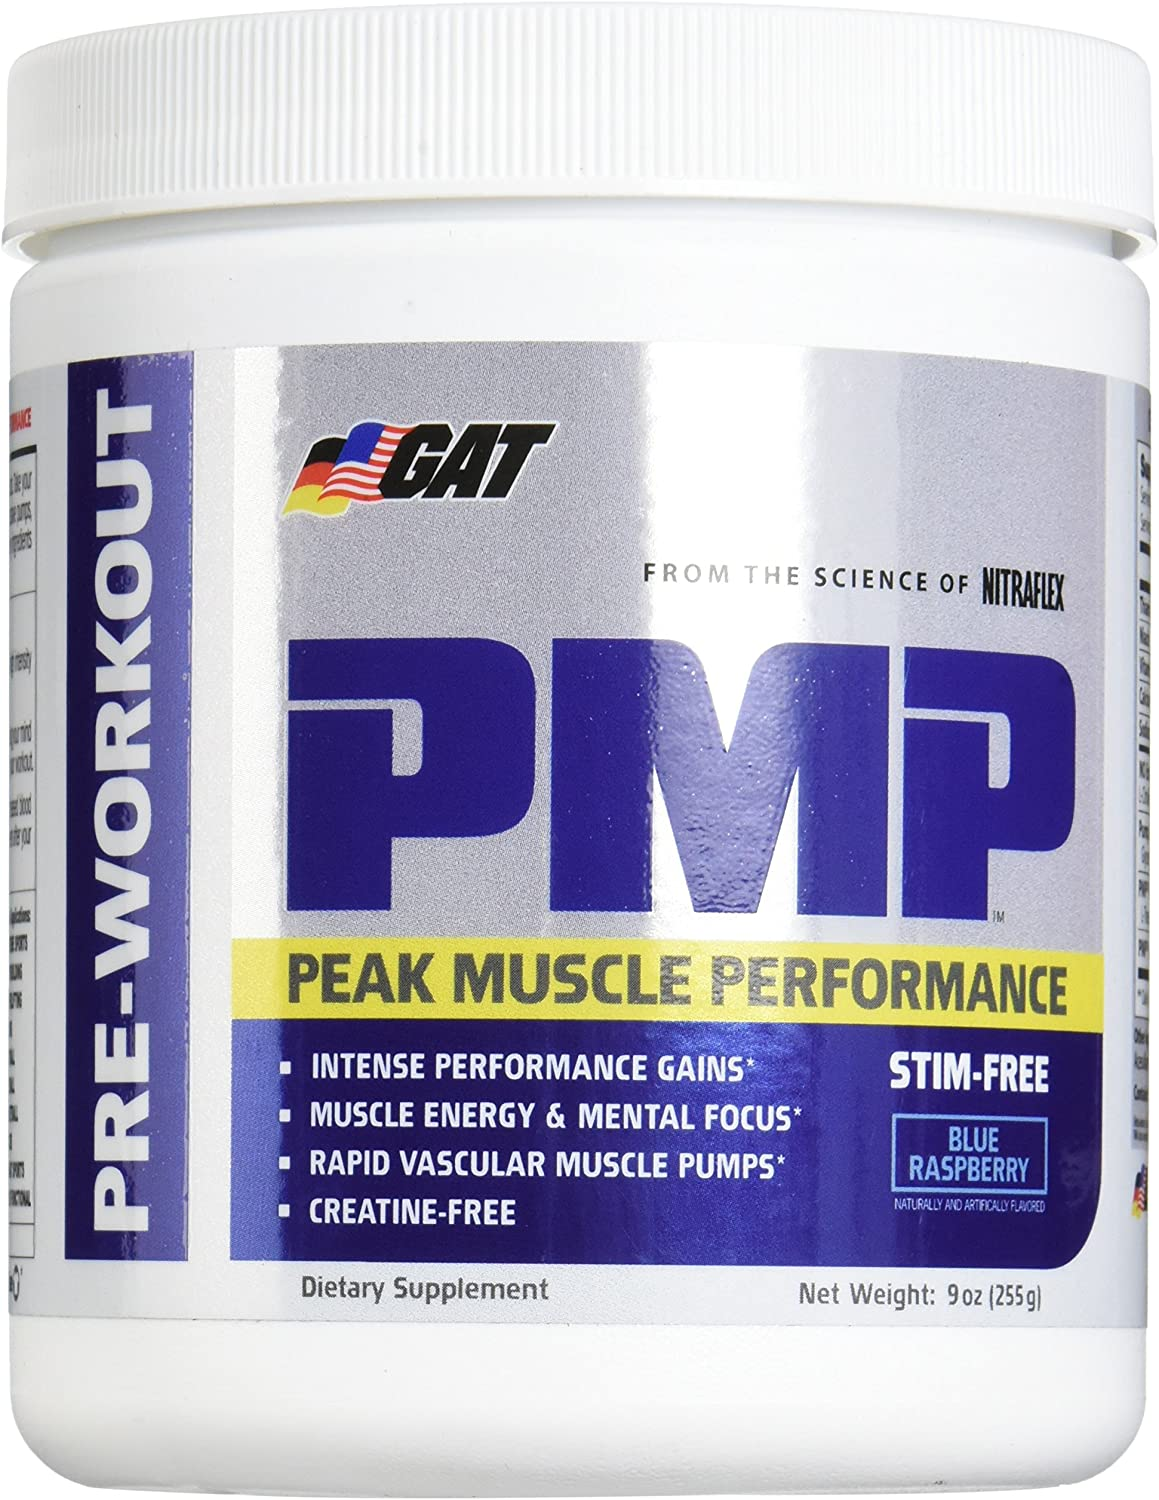 GAT Pmp Stimulant Free Supplement, Blue Raspberry, 9 Ounce